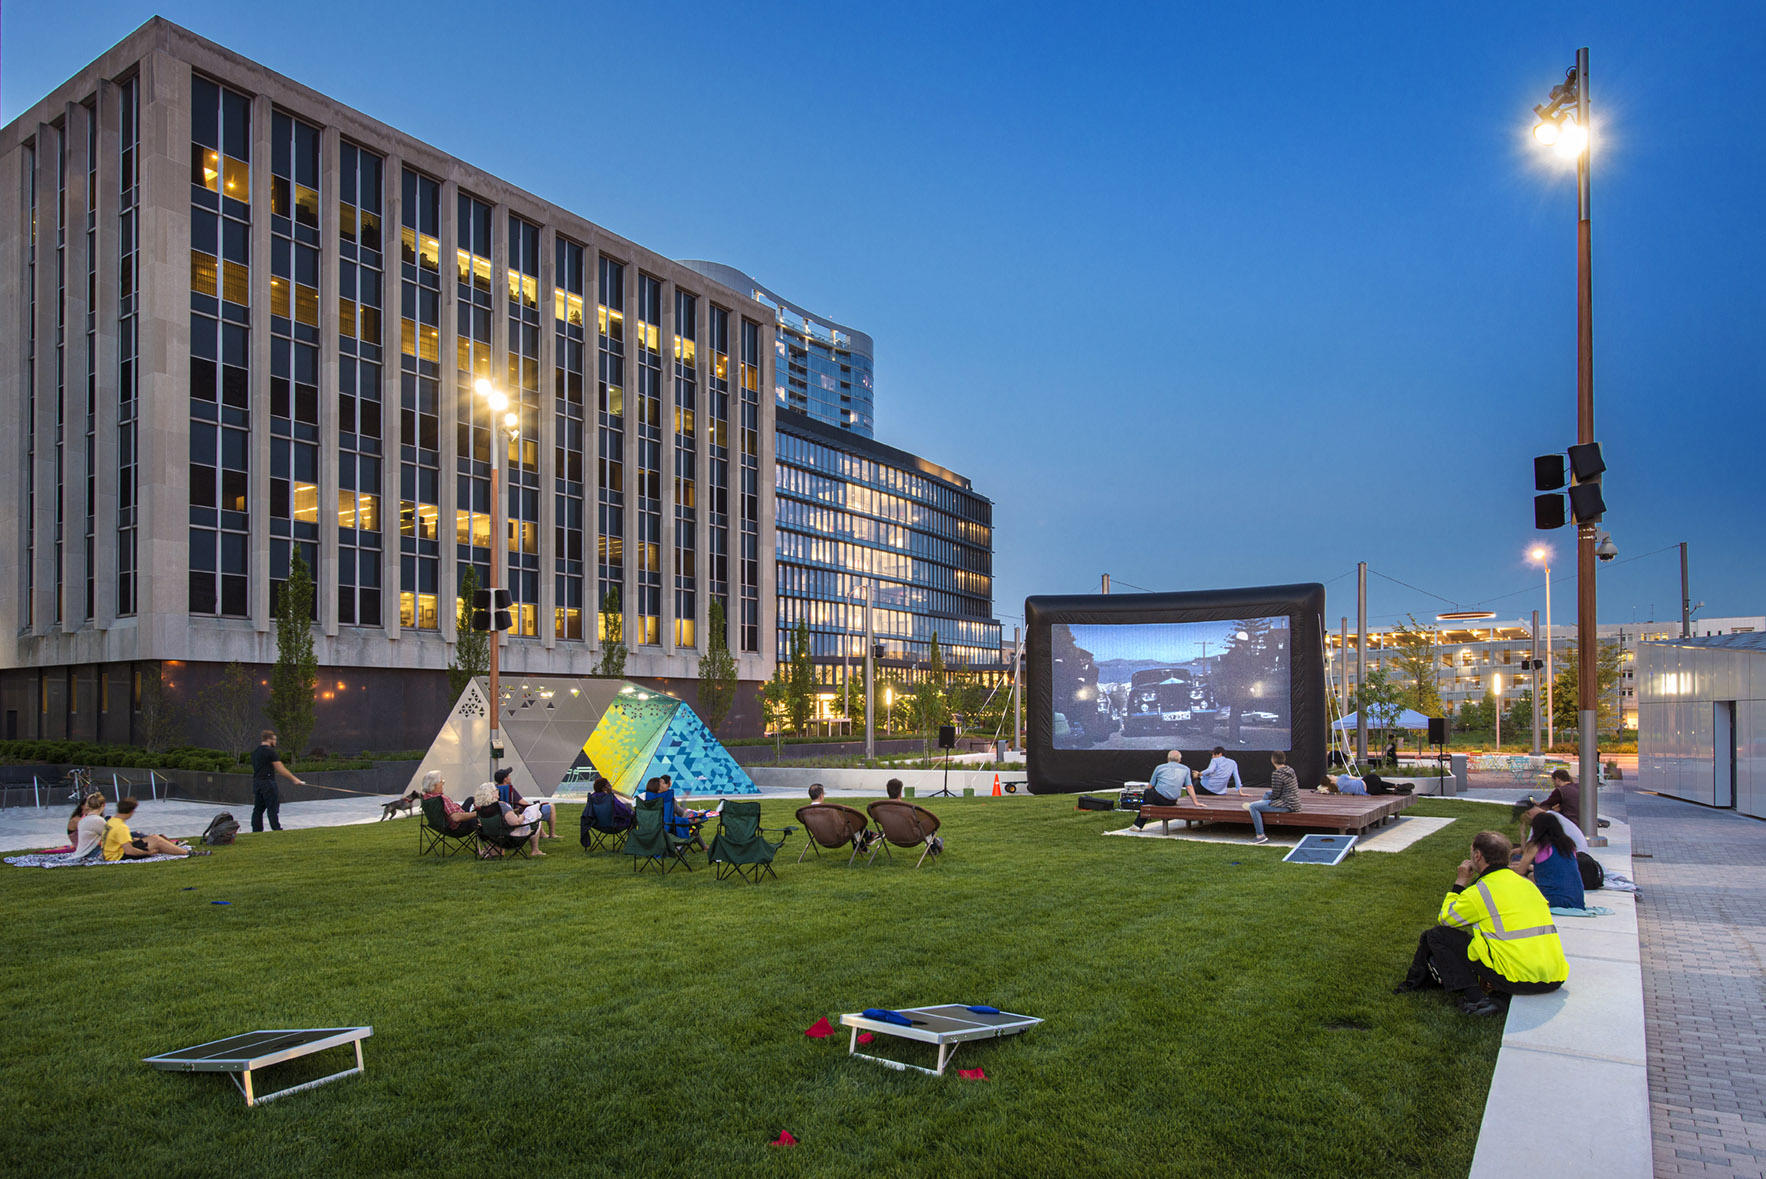 Take in a film on the lawn.  Image by Daniel Showalter/REA.